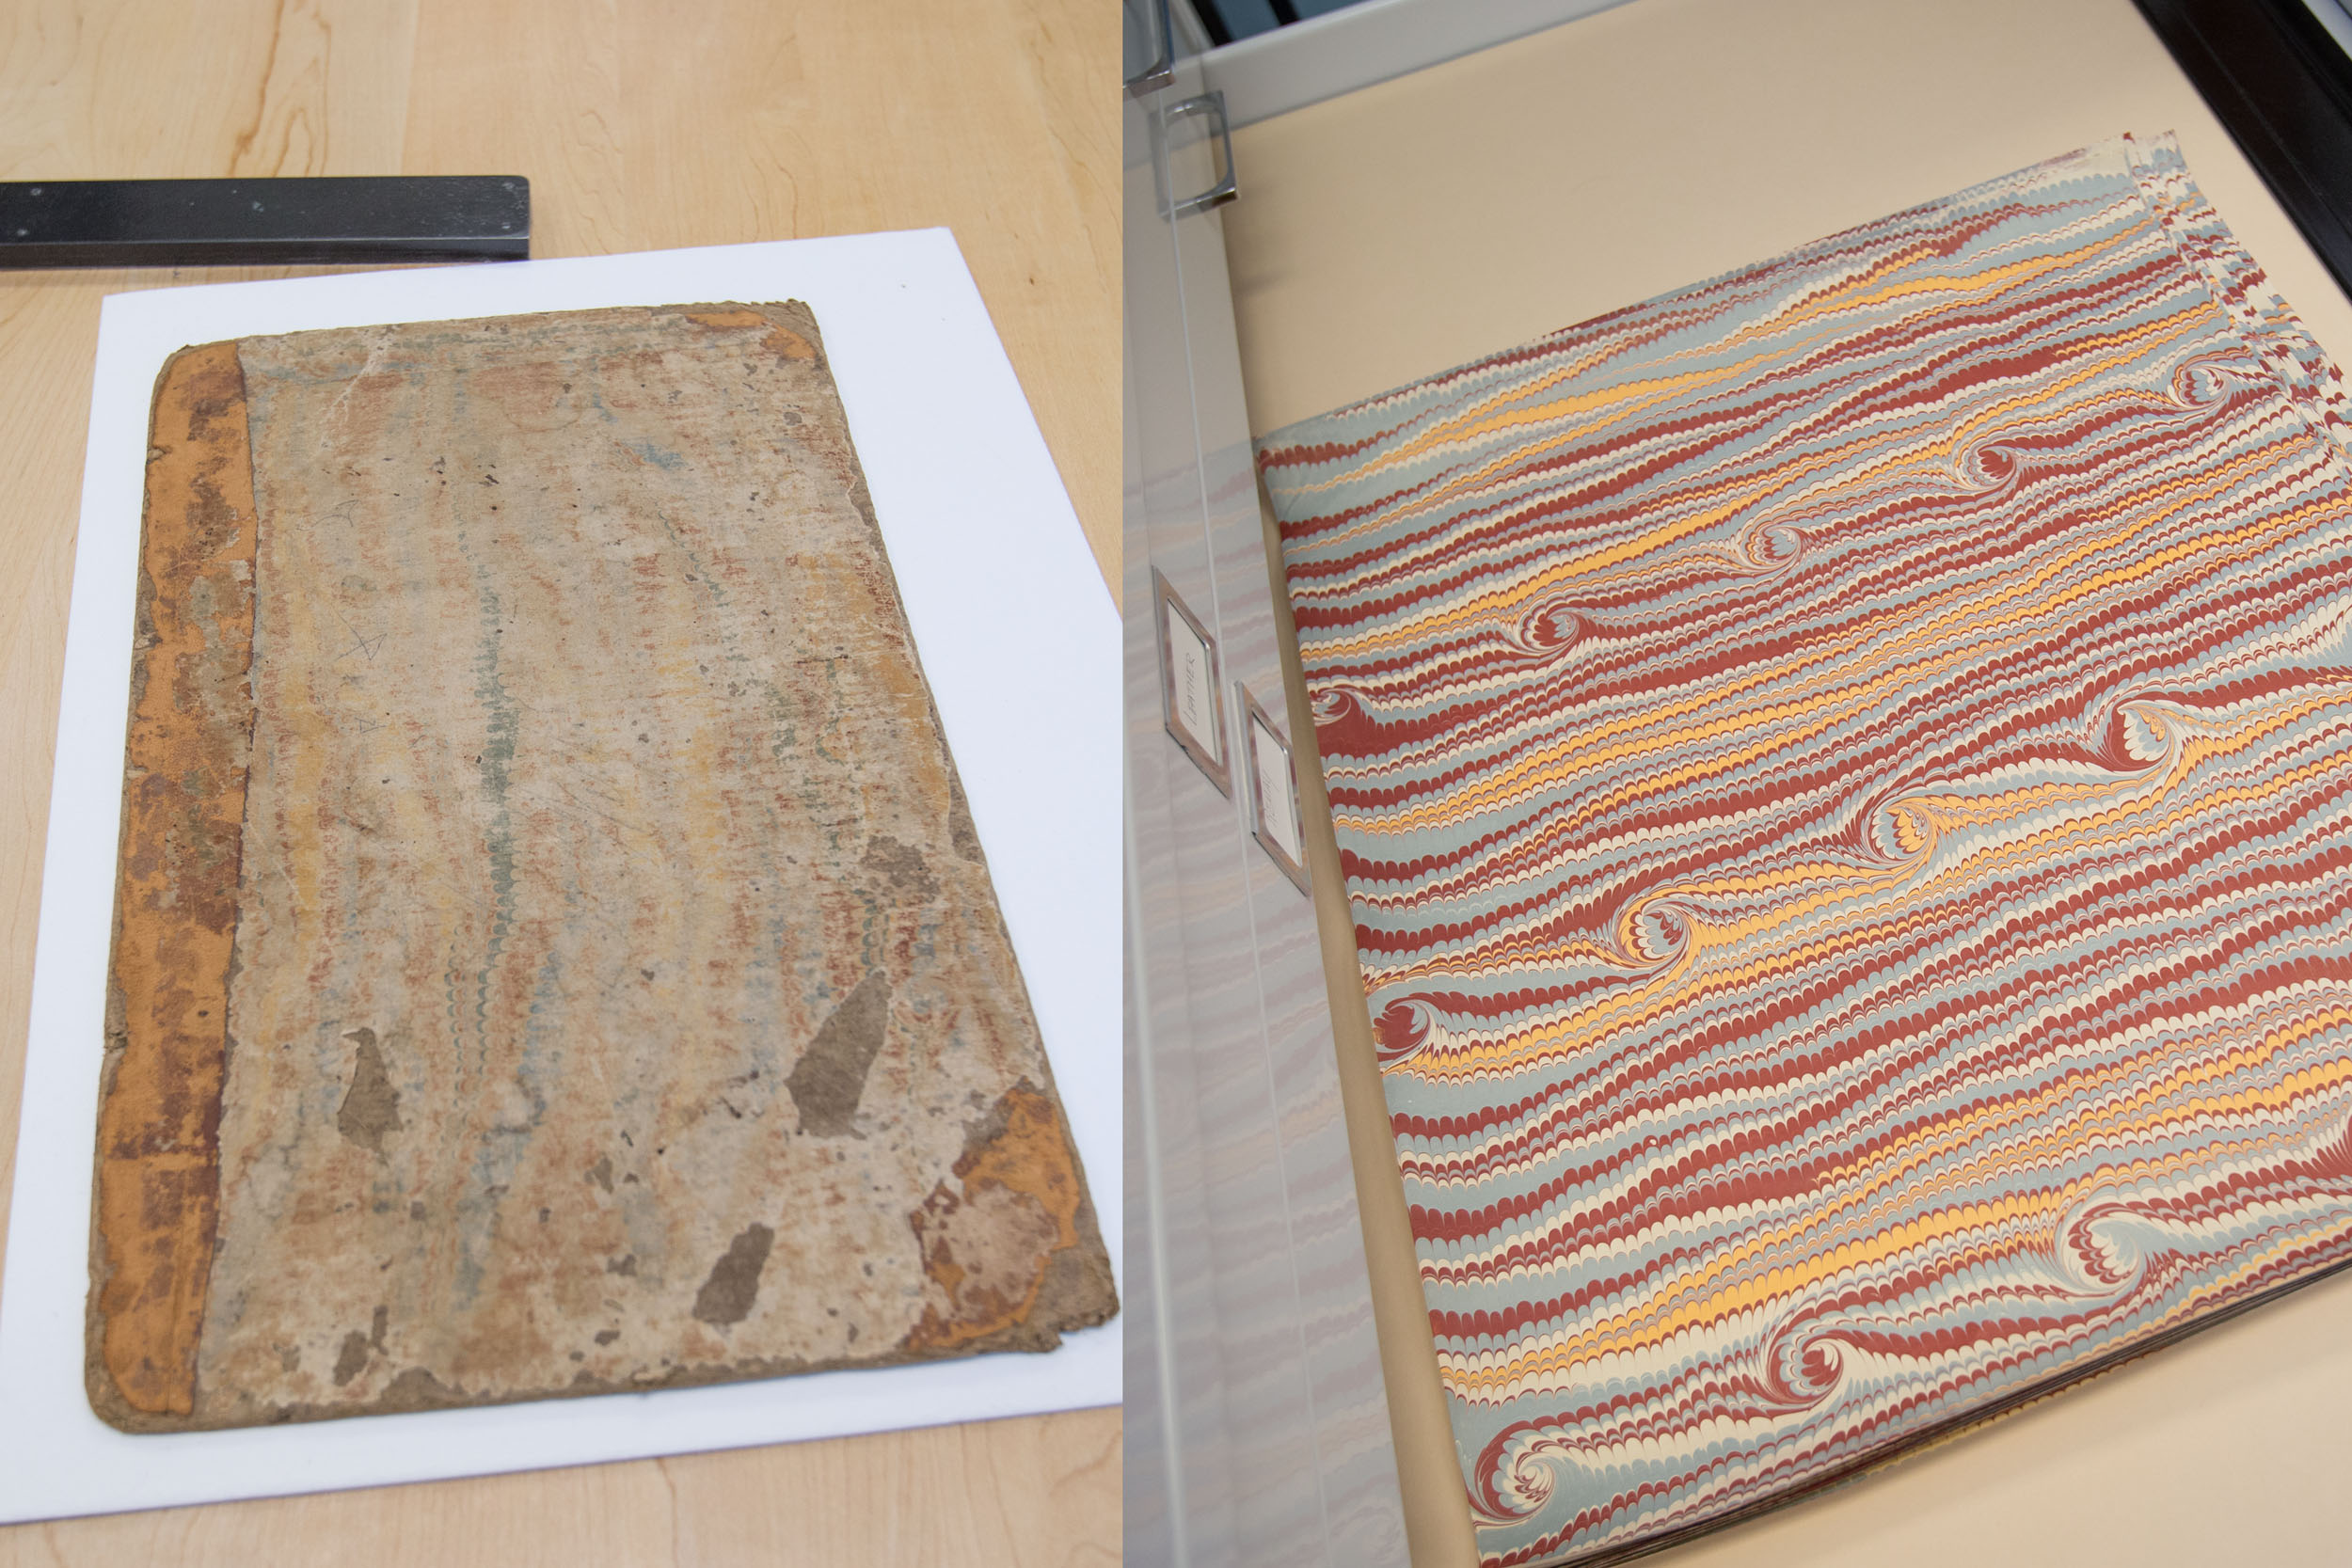 The book's new cover paper was marbled to mimic its original design.